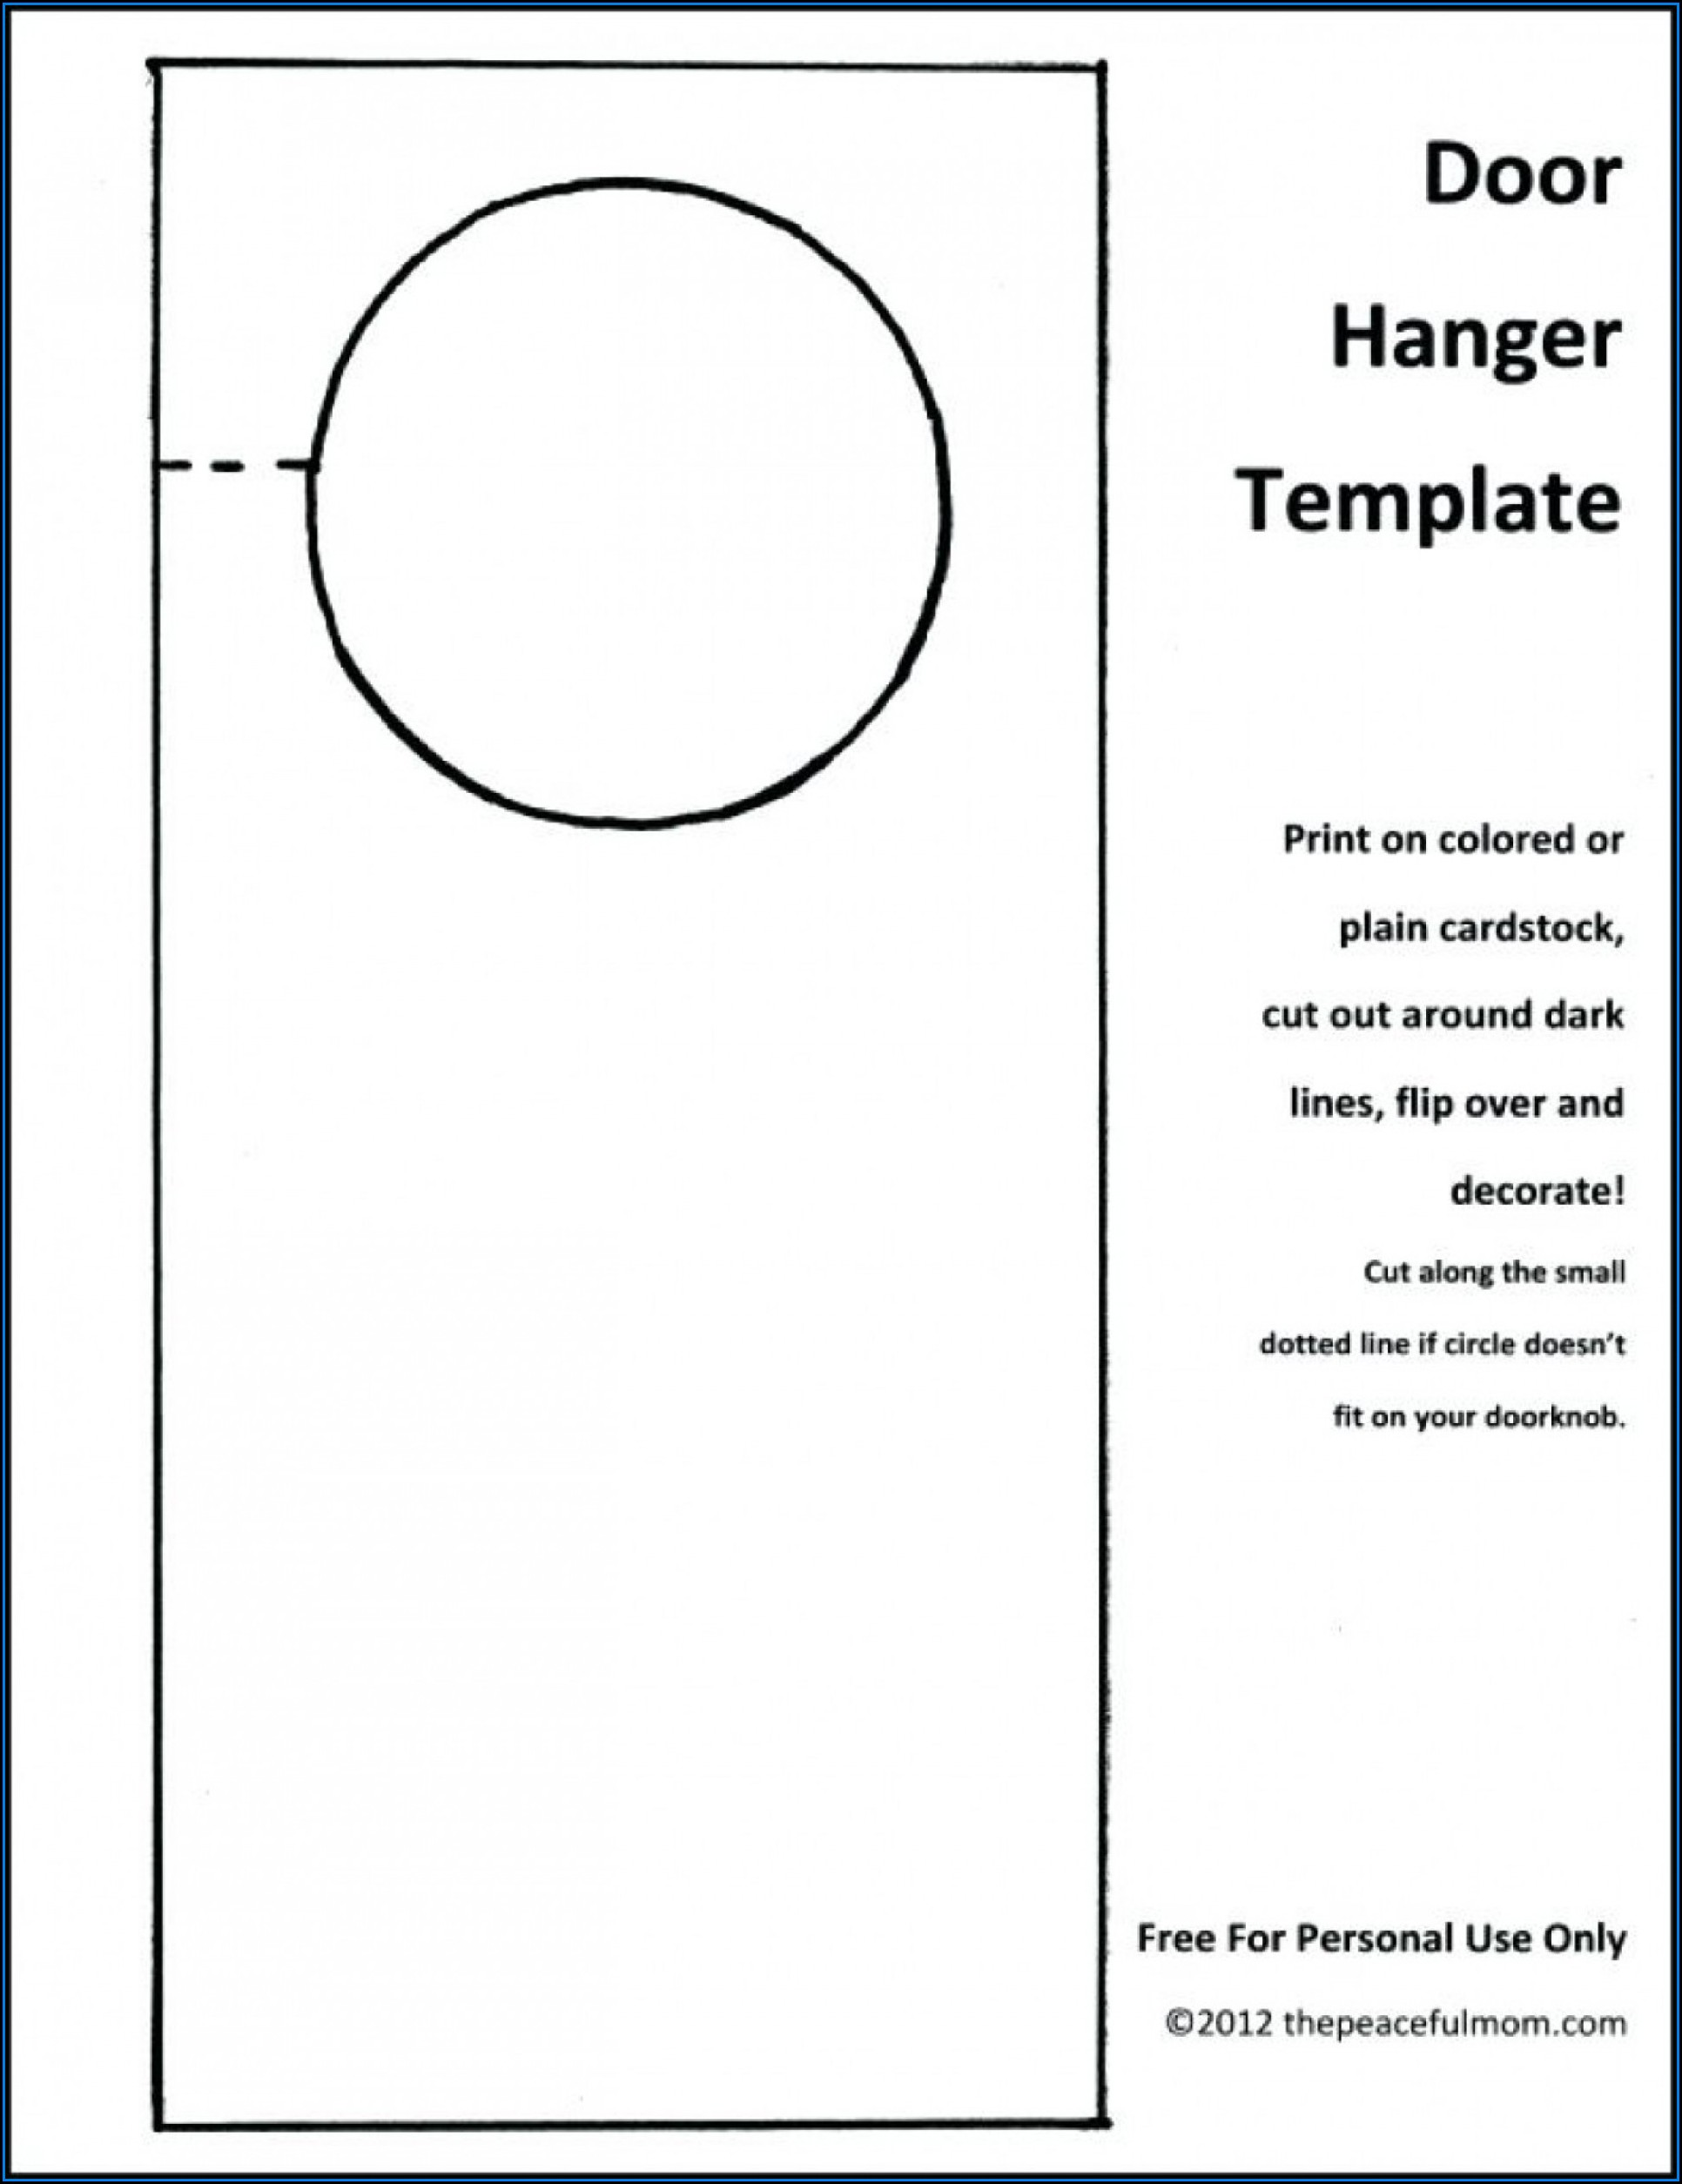 Free Door Hanger Template Publisher